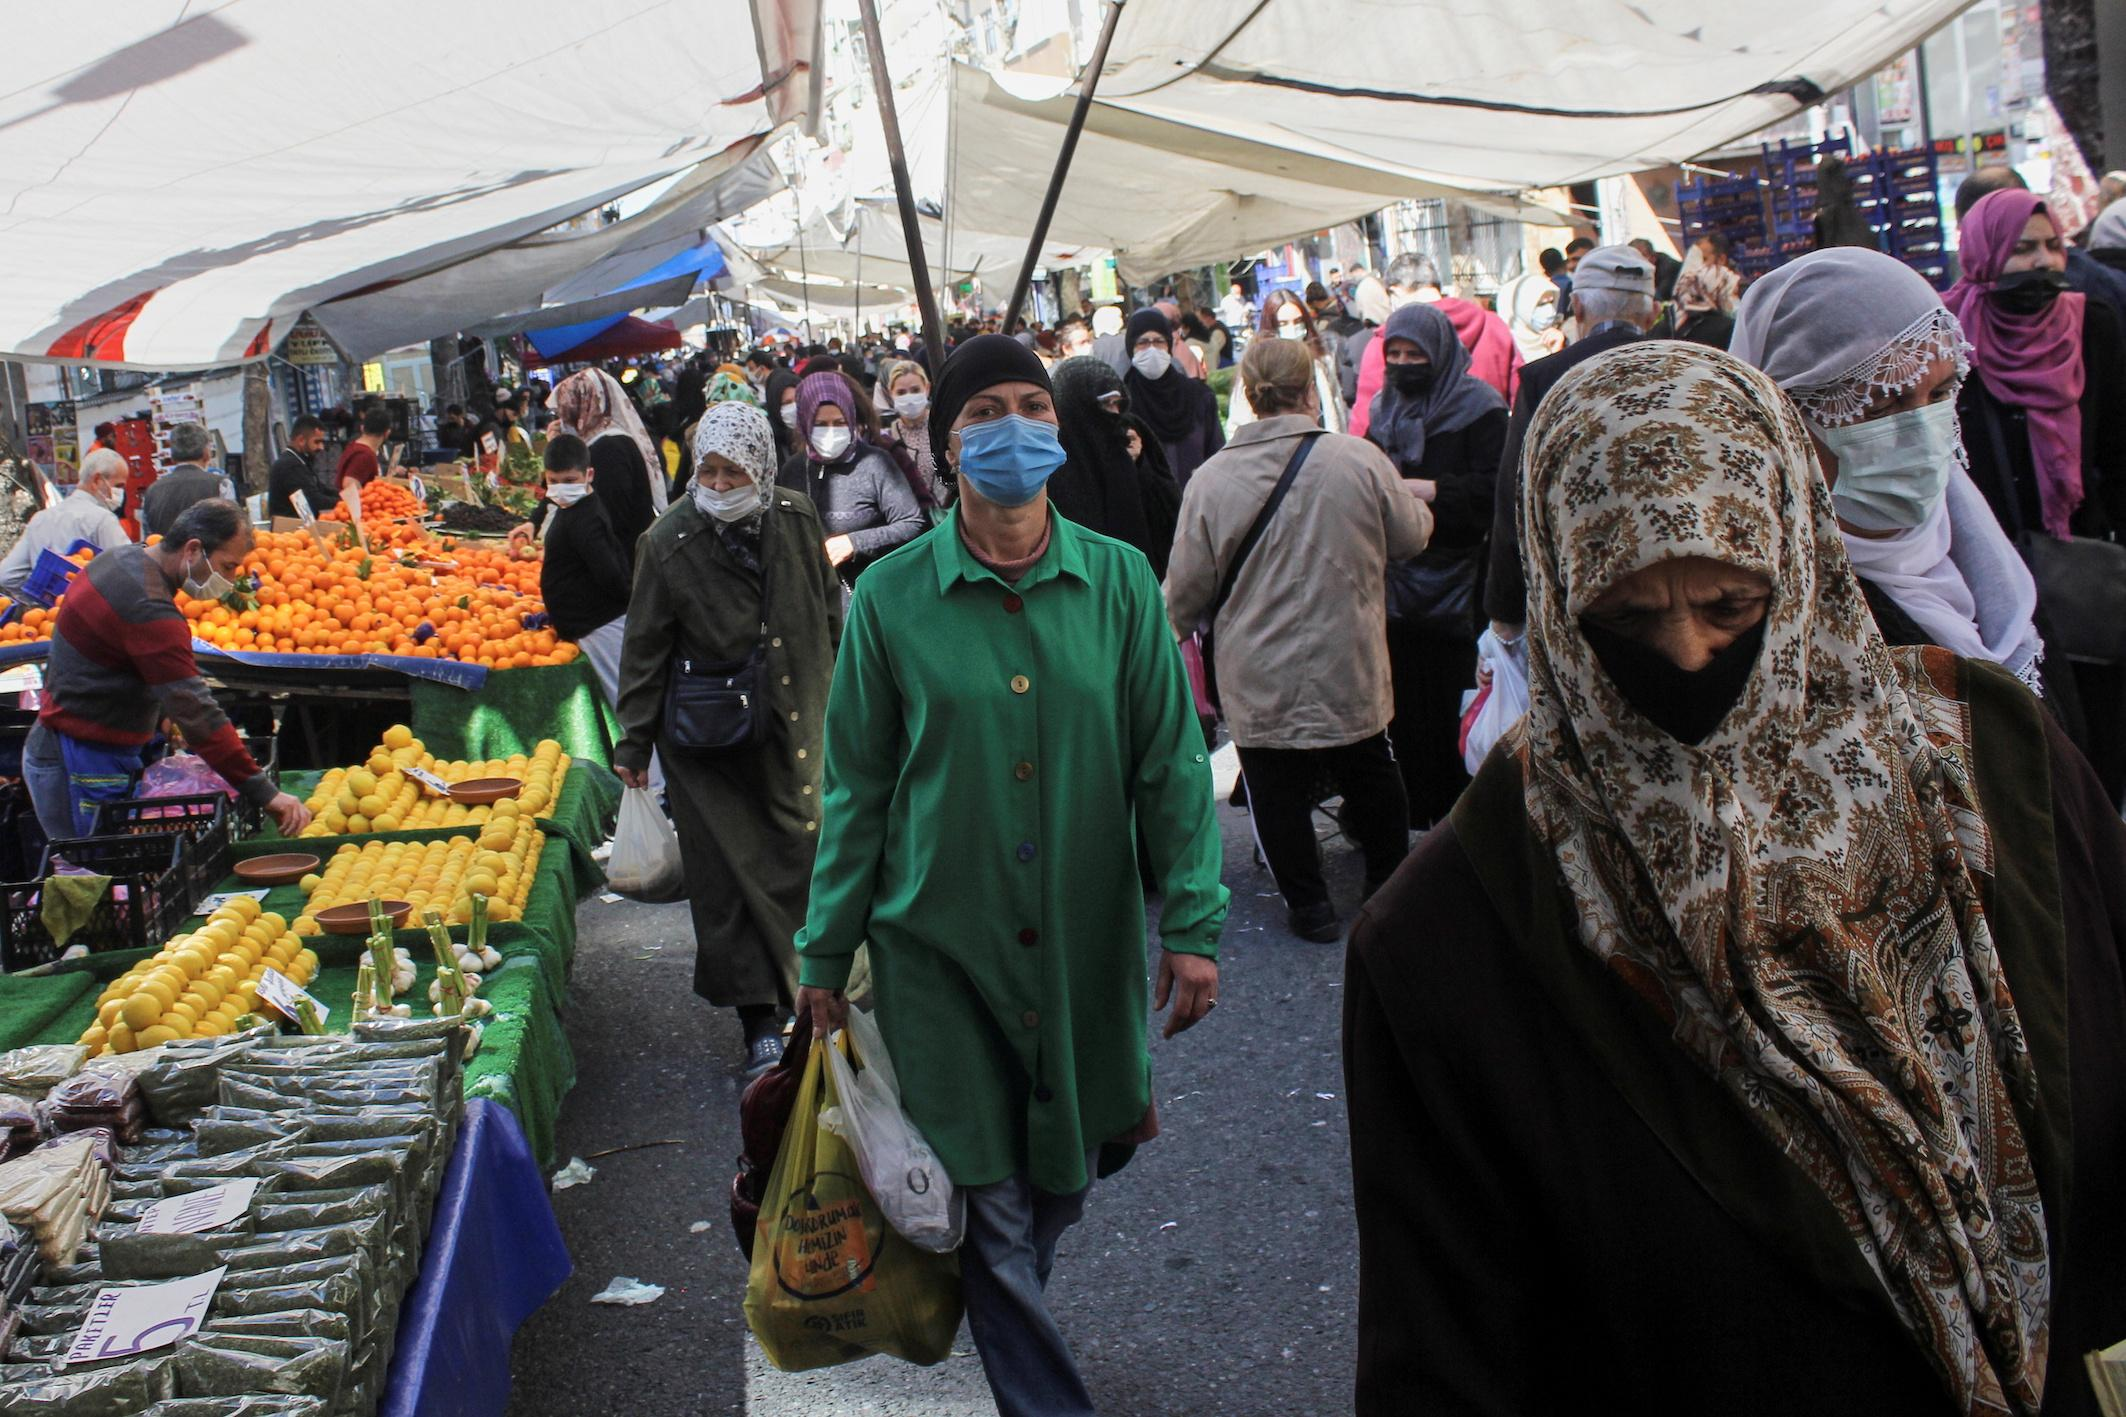 Inequality, inflation hurting pandemic recovery - IMF